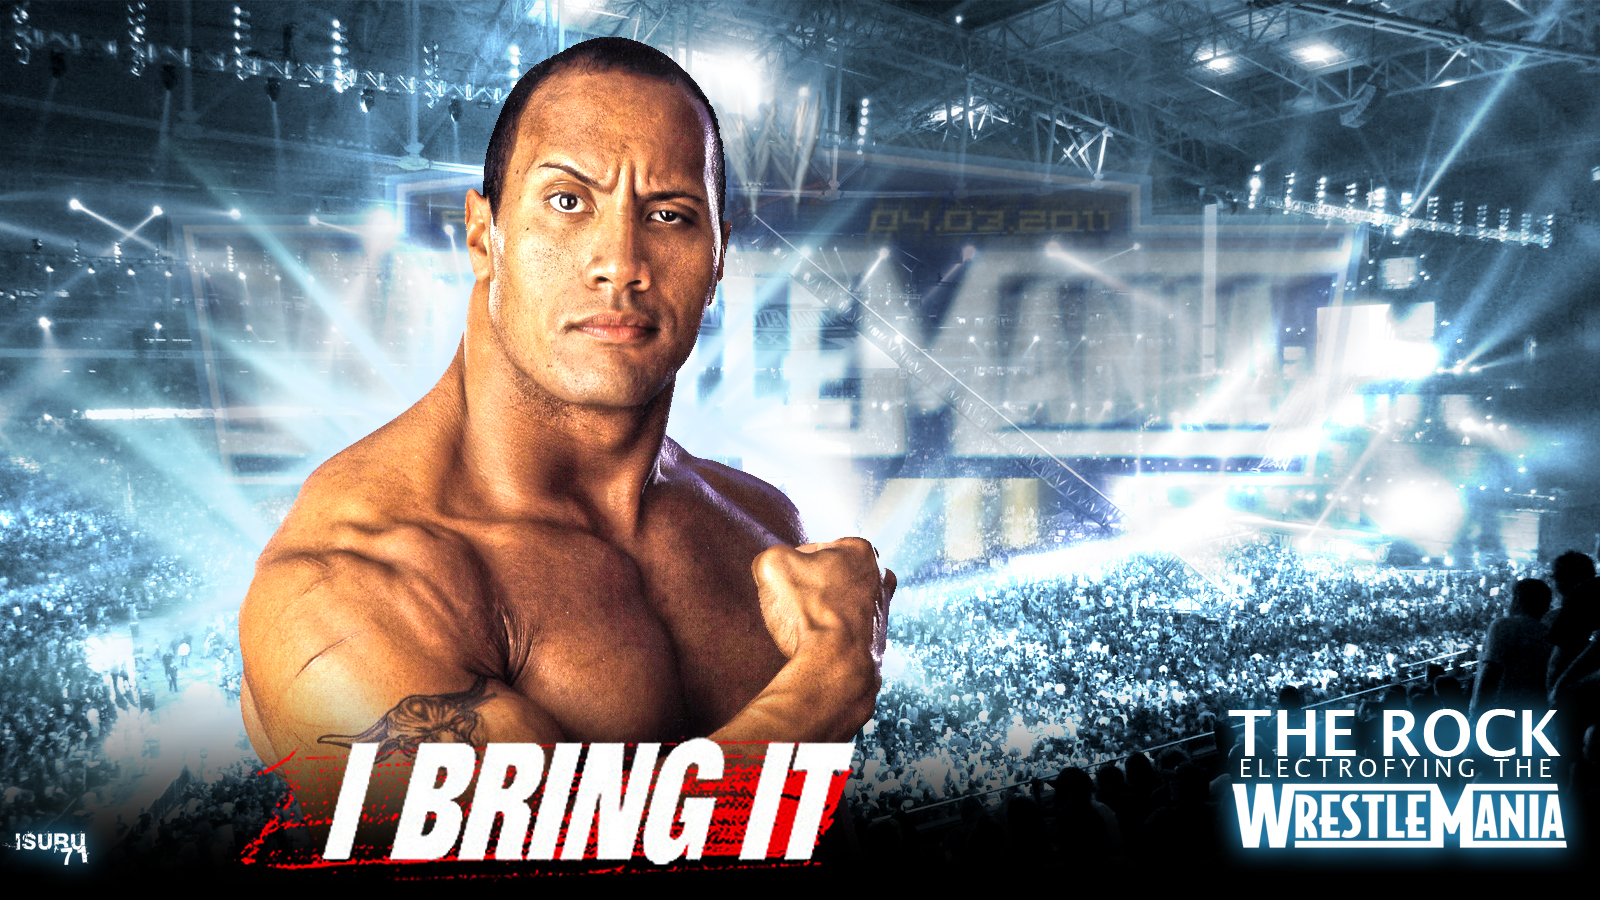 wwe the rock wallpaper - hd desktop wallpapers